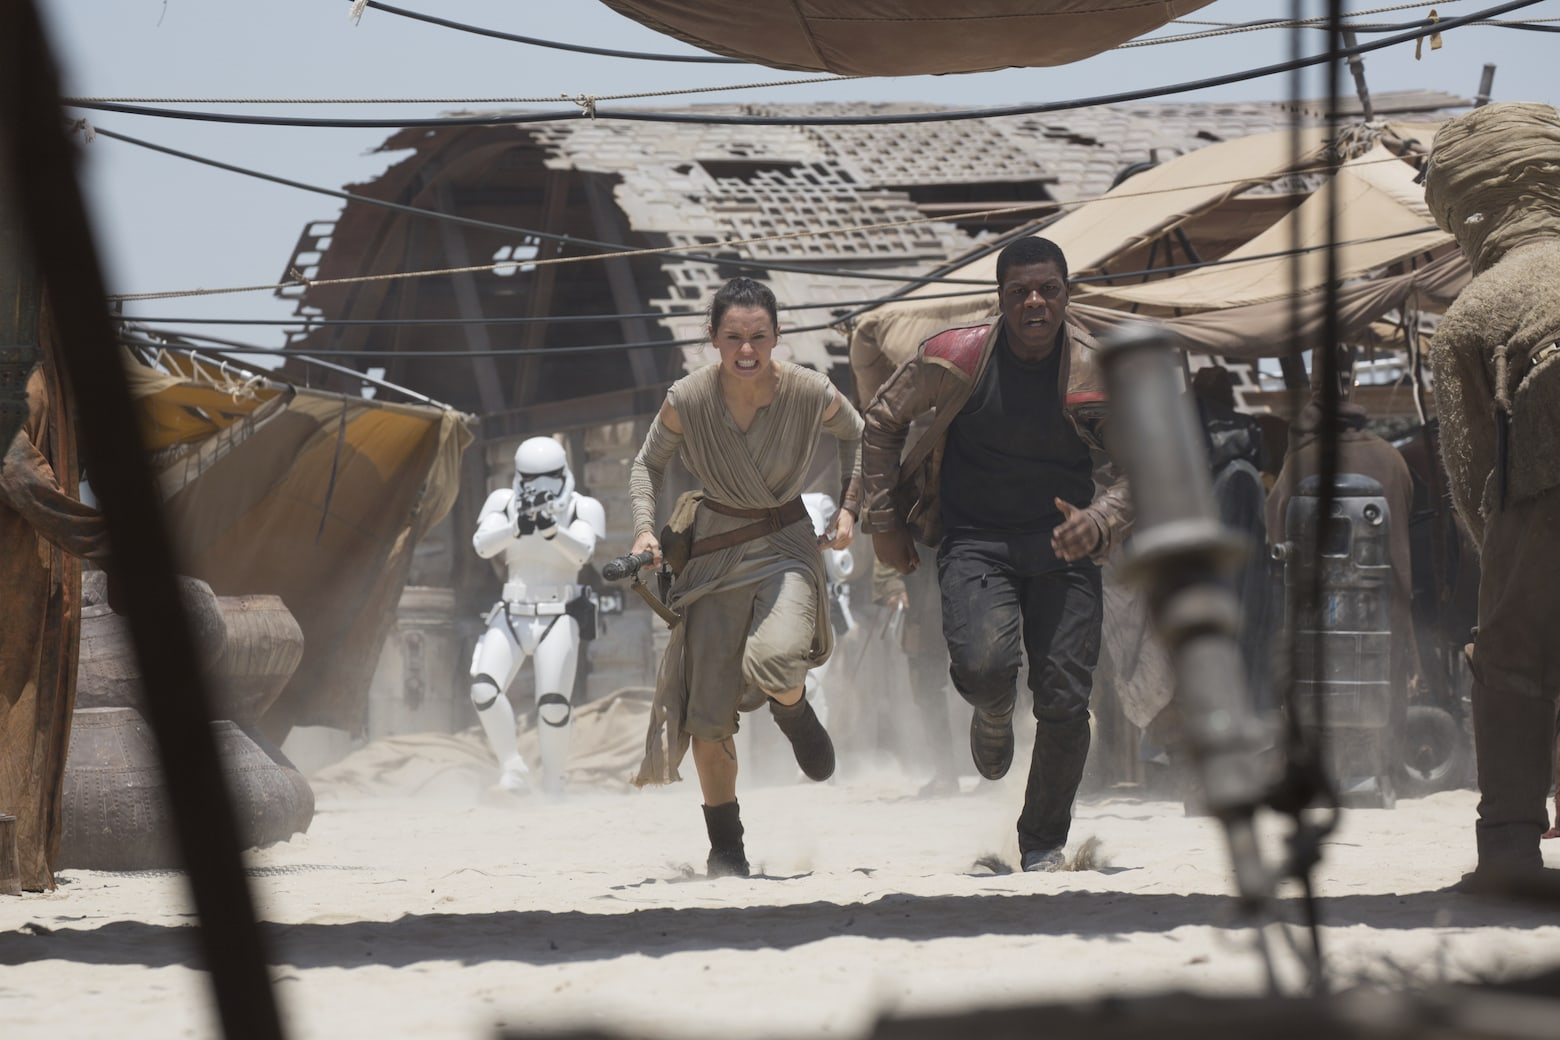 Rey and Finn run from First Order stormtroopers.